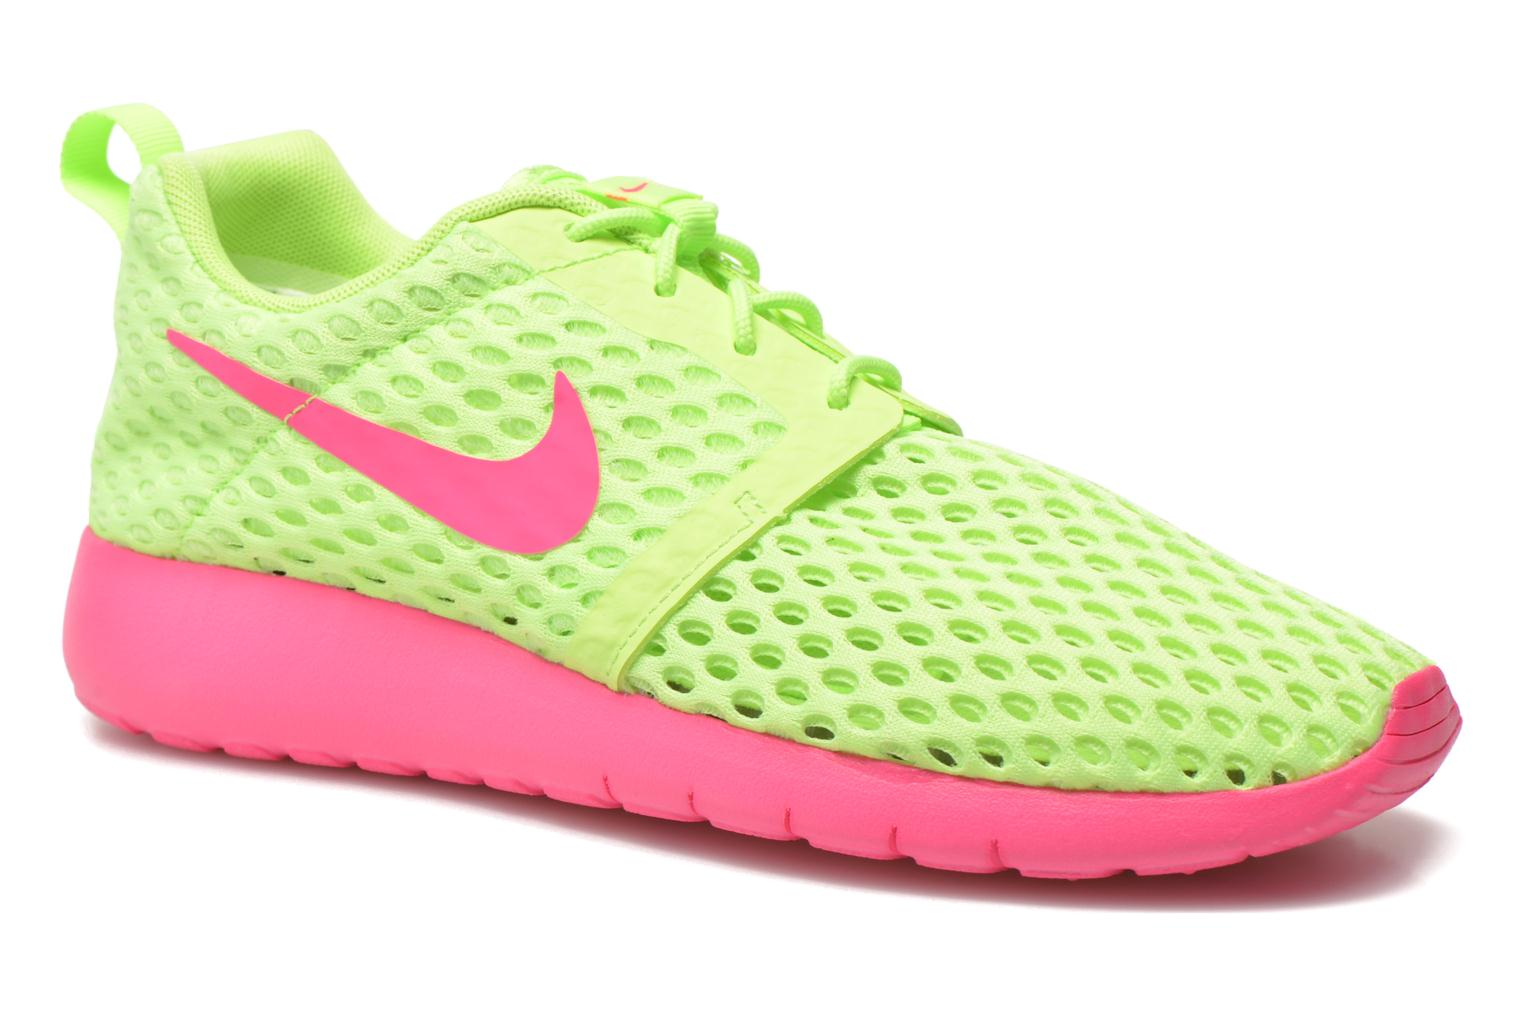 new product abbdf 6aa1d Infant Girl s Nike  Roshe Run Flight Weight GS  Sneaker, Size 6 M -